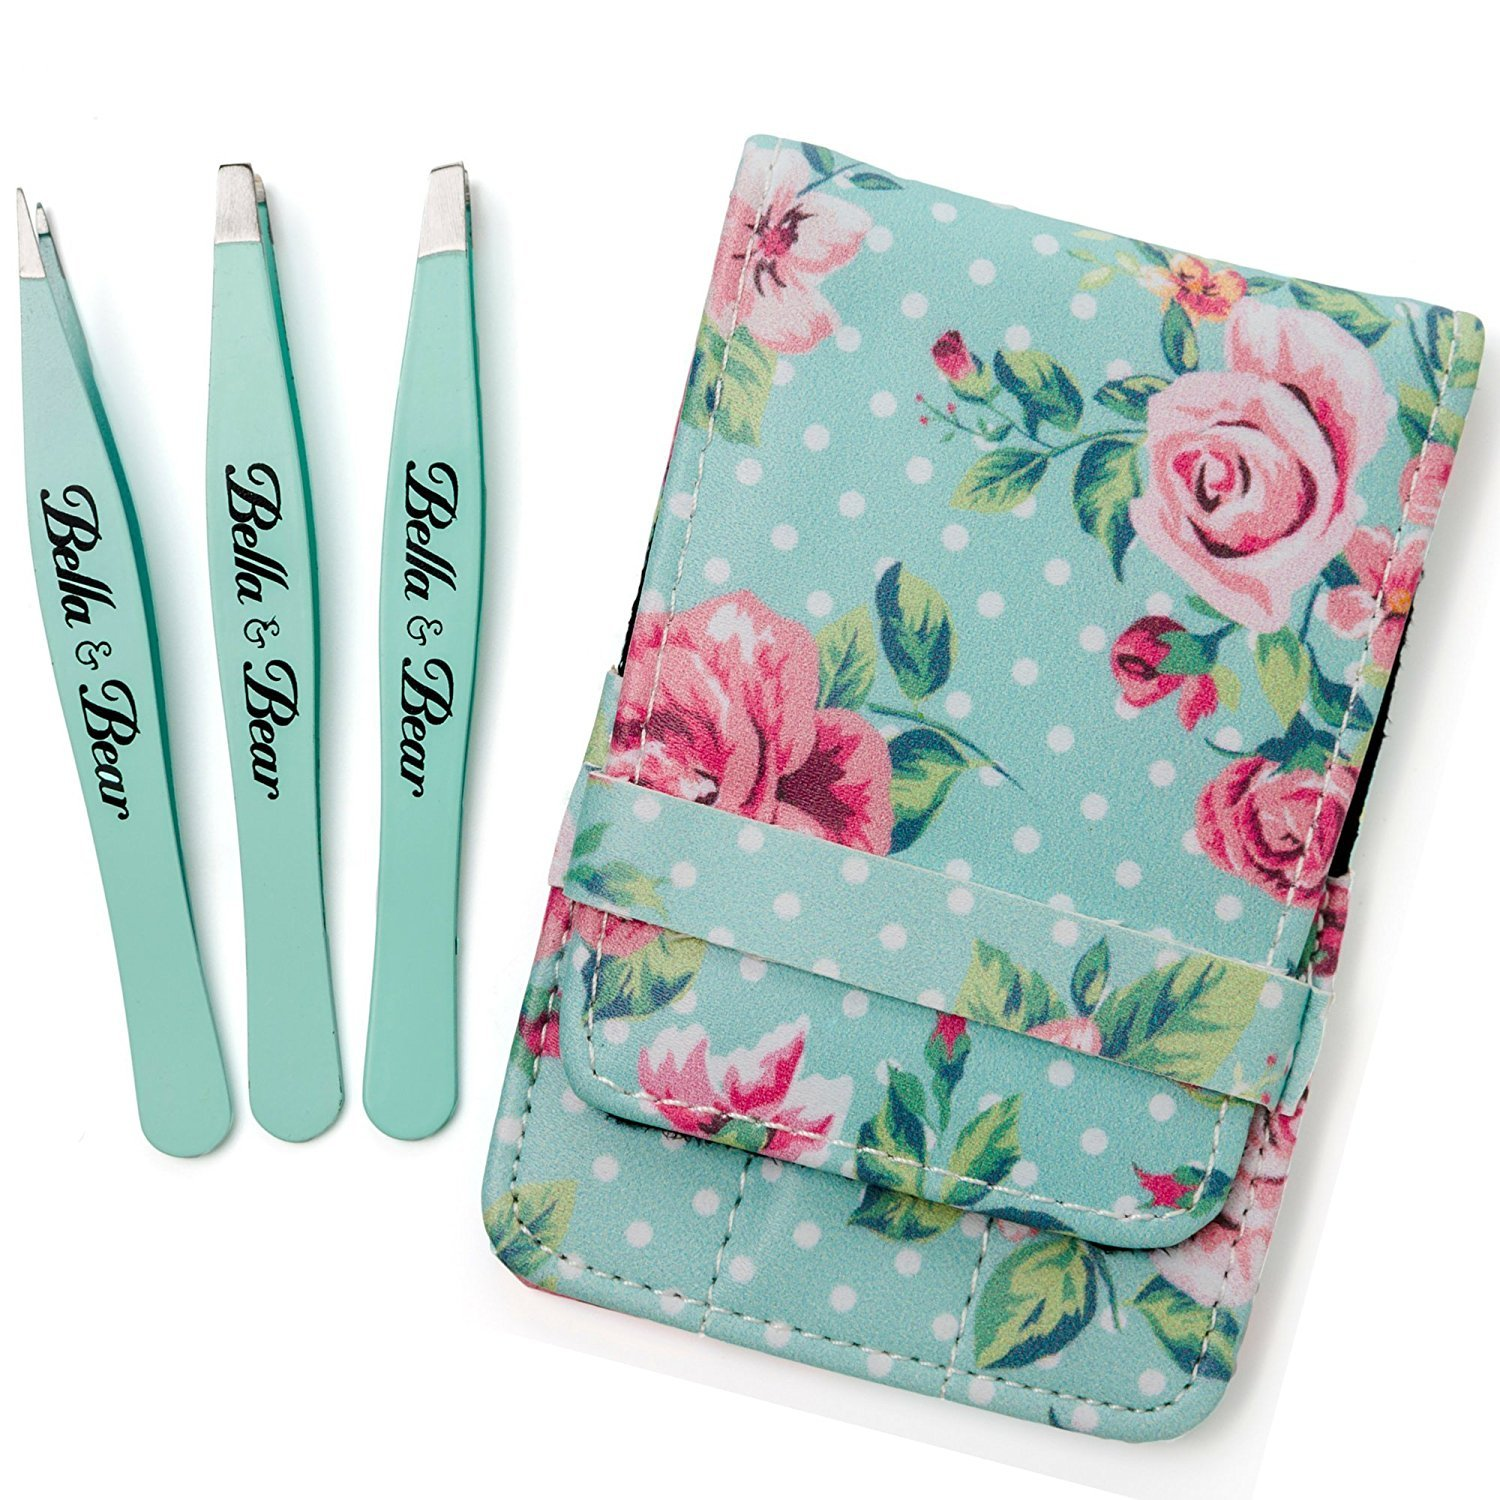 Eyebrow Tweezers by Bella and Bear - The Tweezers Set for Professional Shaping by Bella and Bear (Image #6)